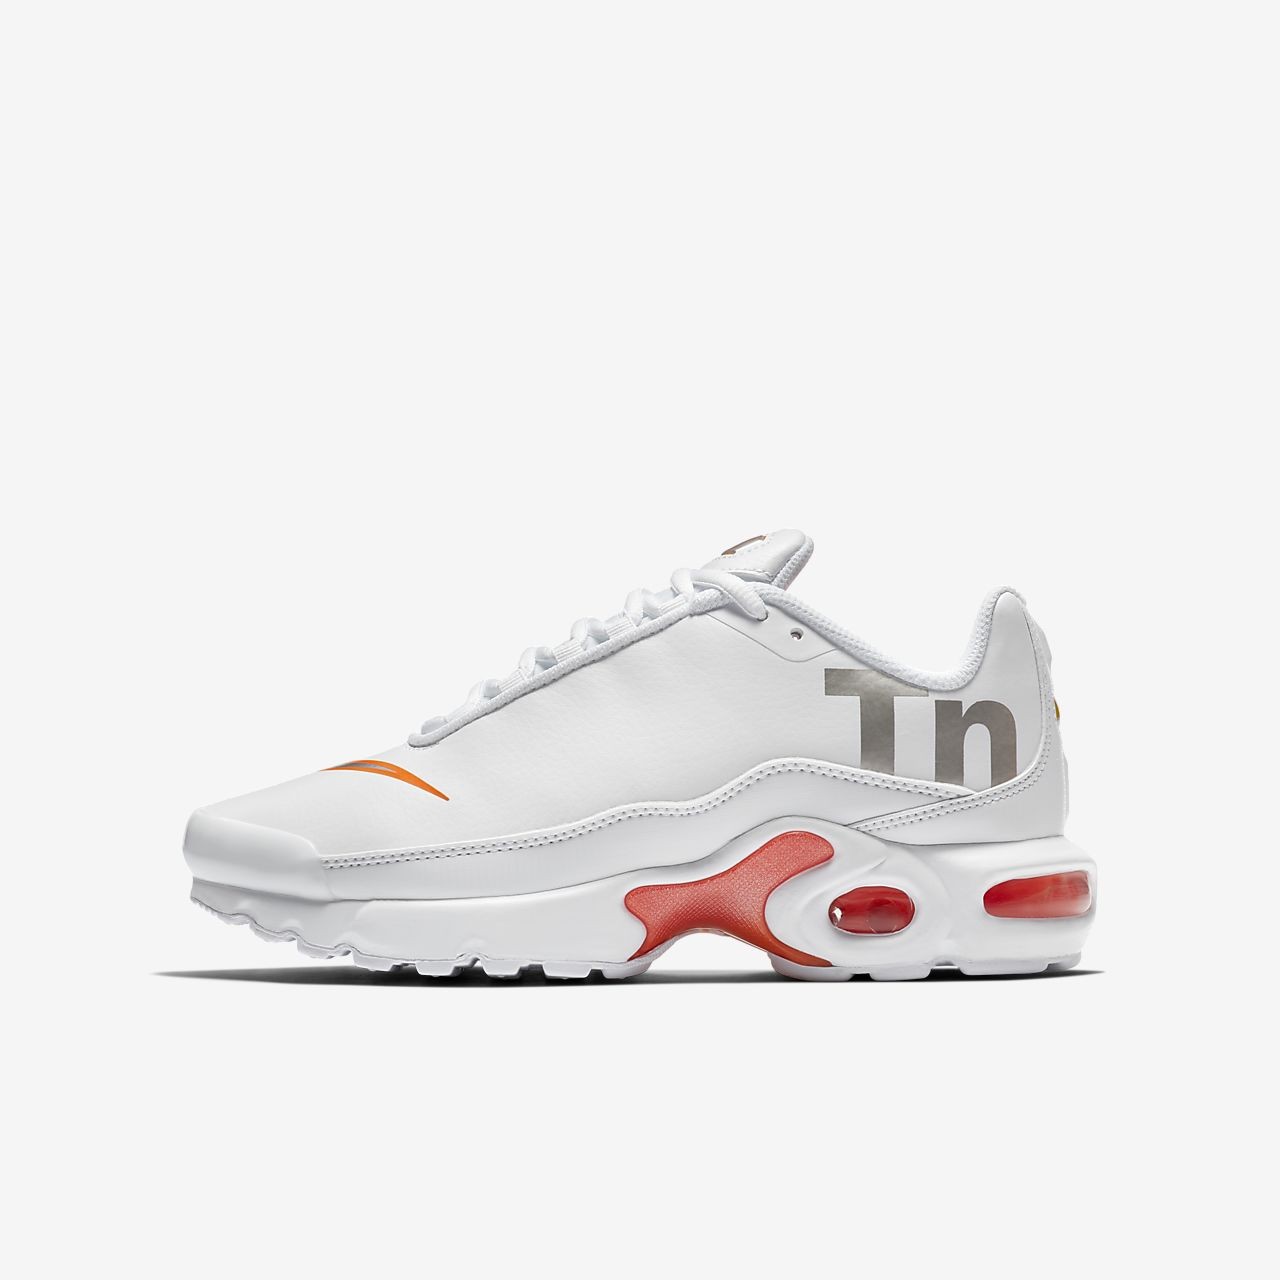 NIKE Köp Junior Skor OnlineAir Max Plus SvartaVitaPink Köp Junior Skor Online Air Max Plus SvartaVitaPink